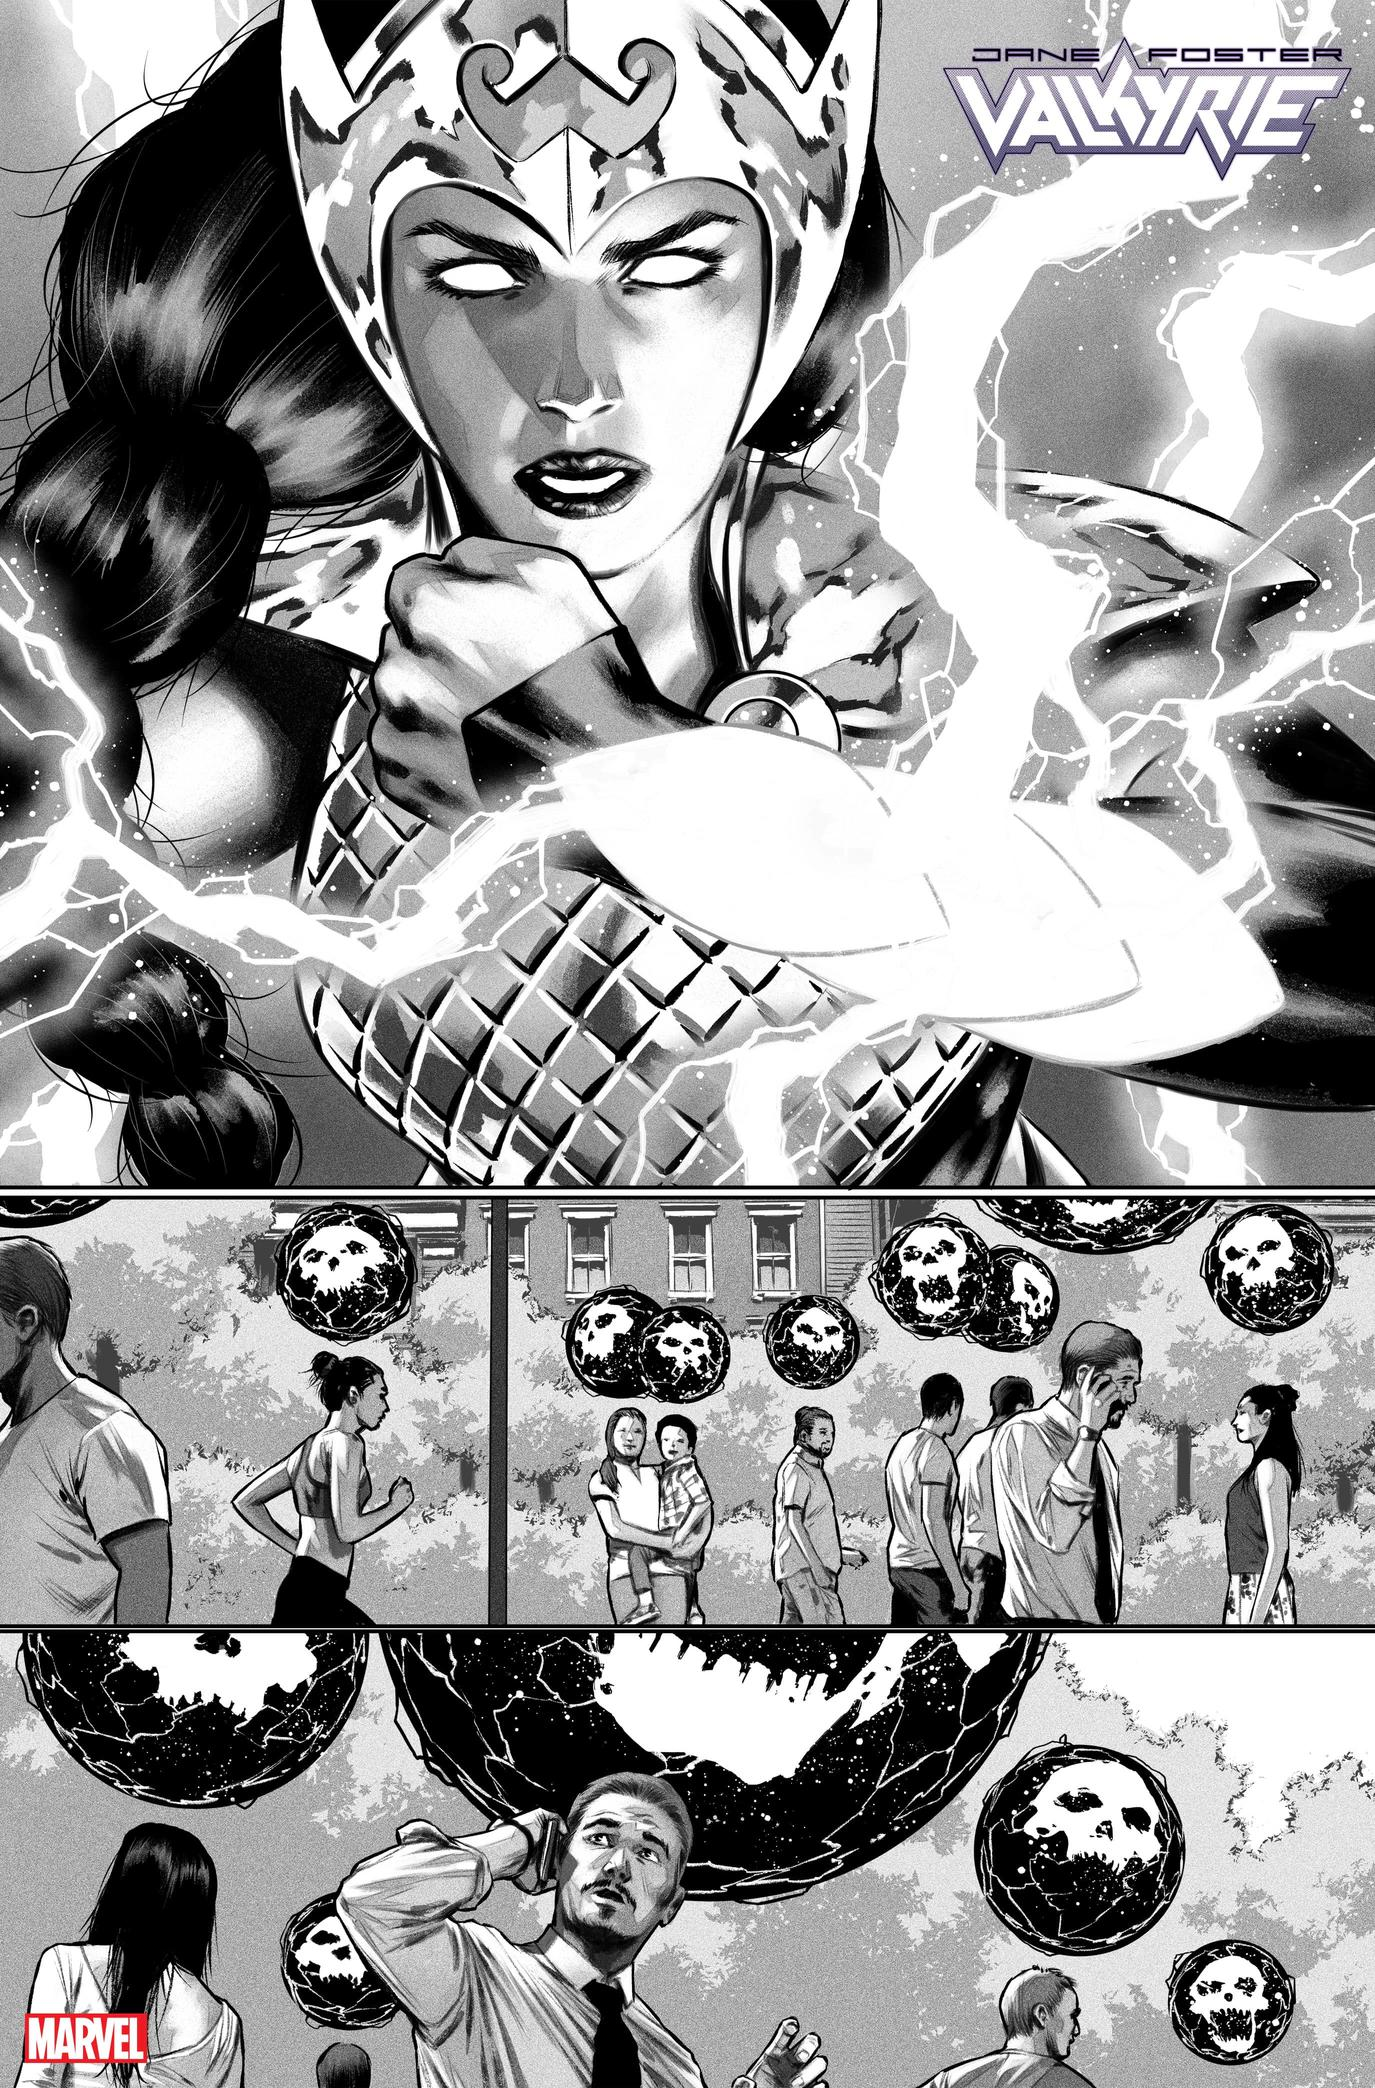 Valkyrie #8 preview art